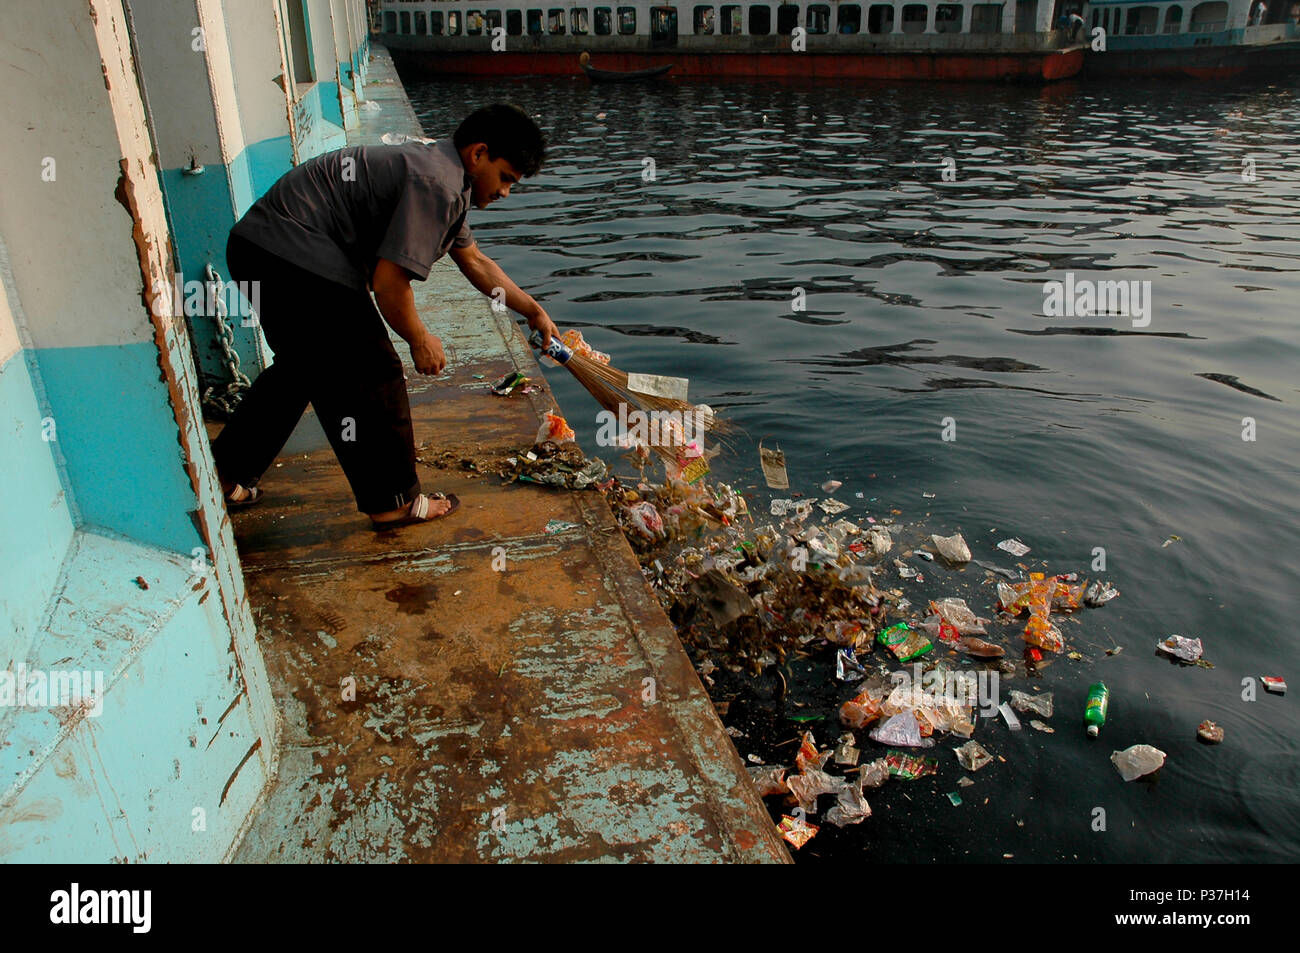 A man sweeps floor of the launch and puts rubbish on the Buriganga River. Dhaka, Bangladesh. - Stock Image